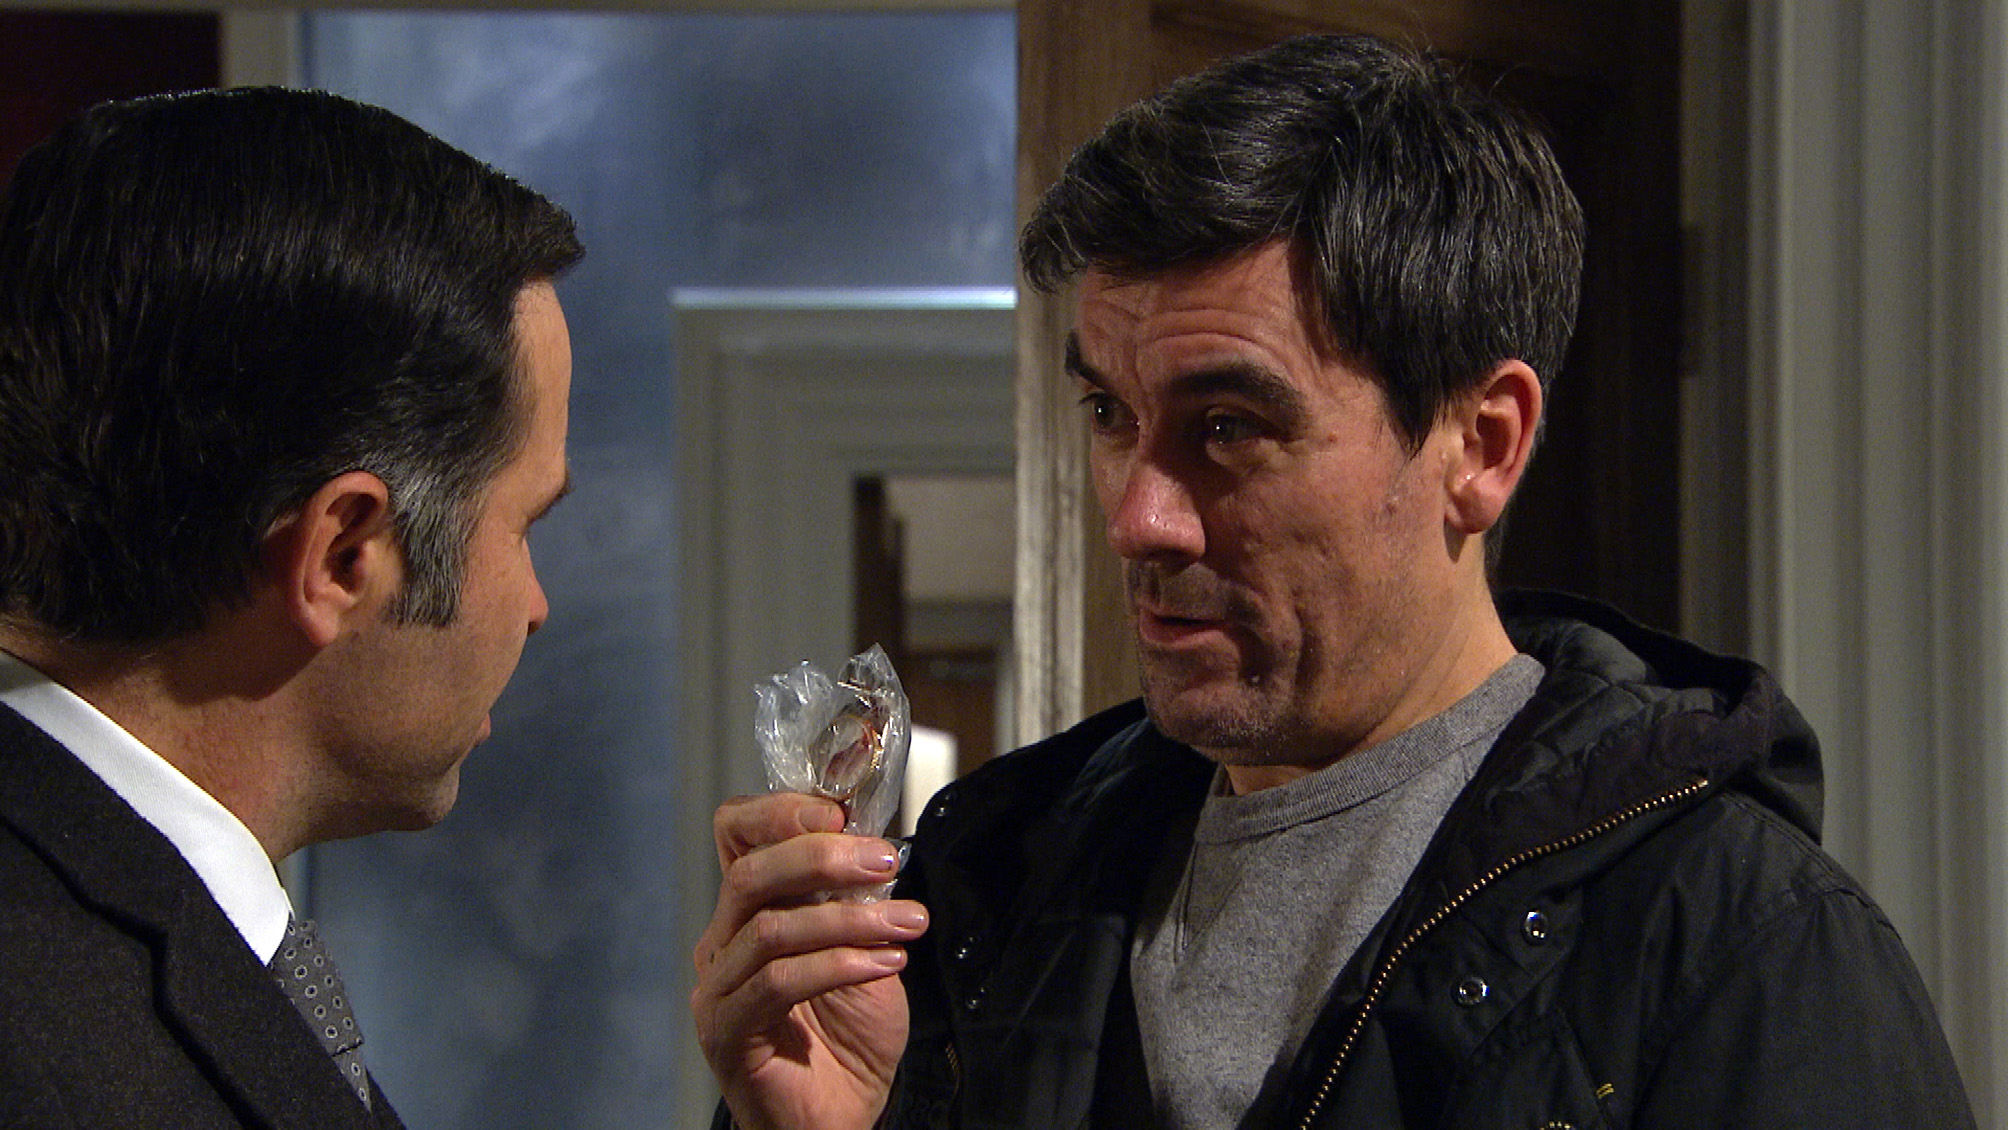 Emmerdale spoilers: Cain Dingle turns the tables on Graham Foster as plot backfires – will he kill him?